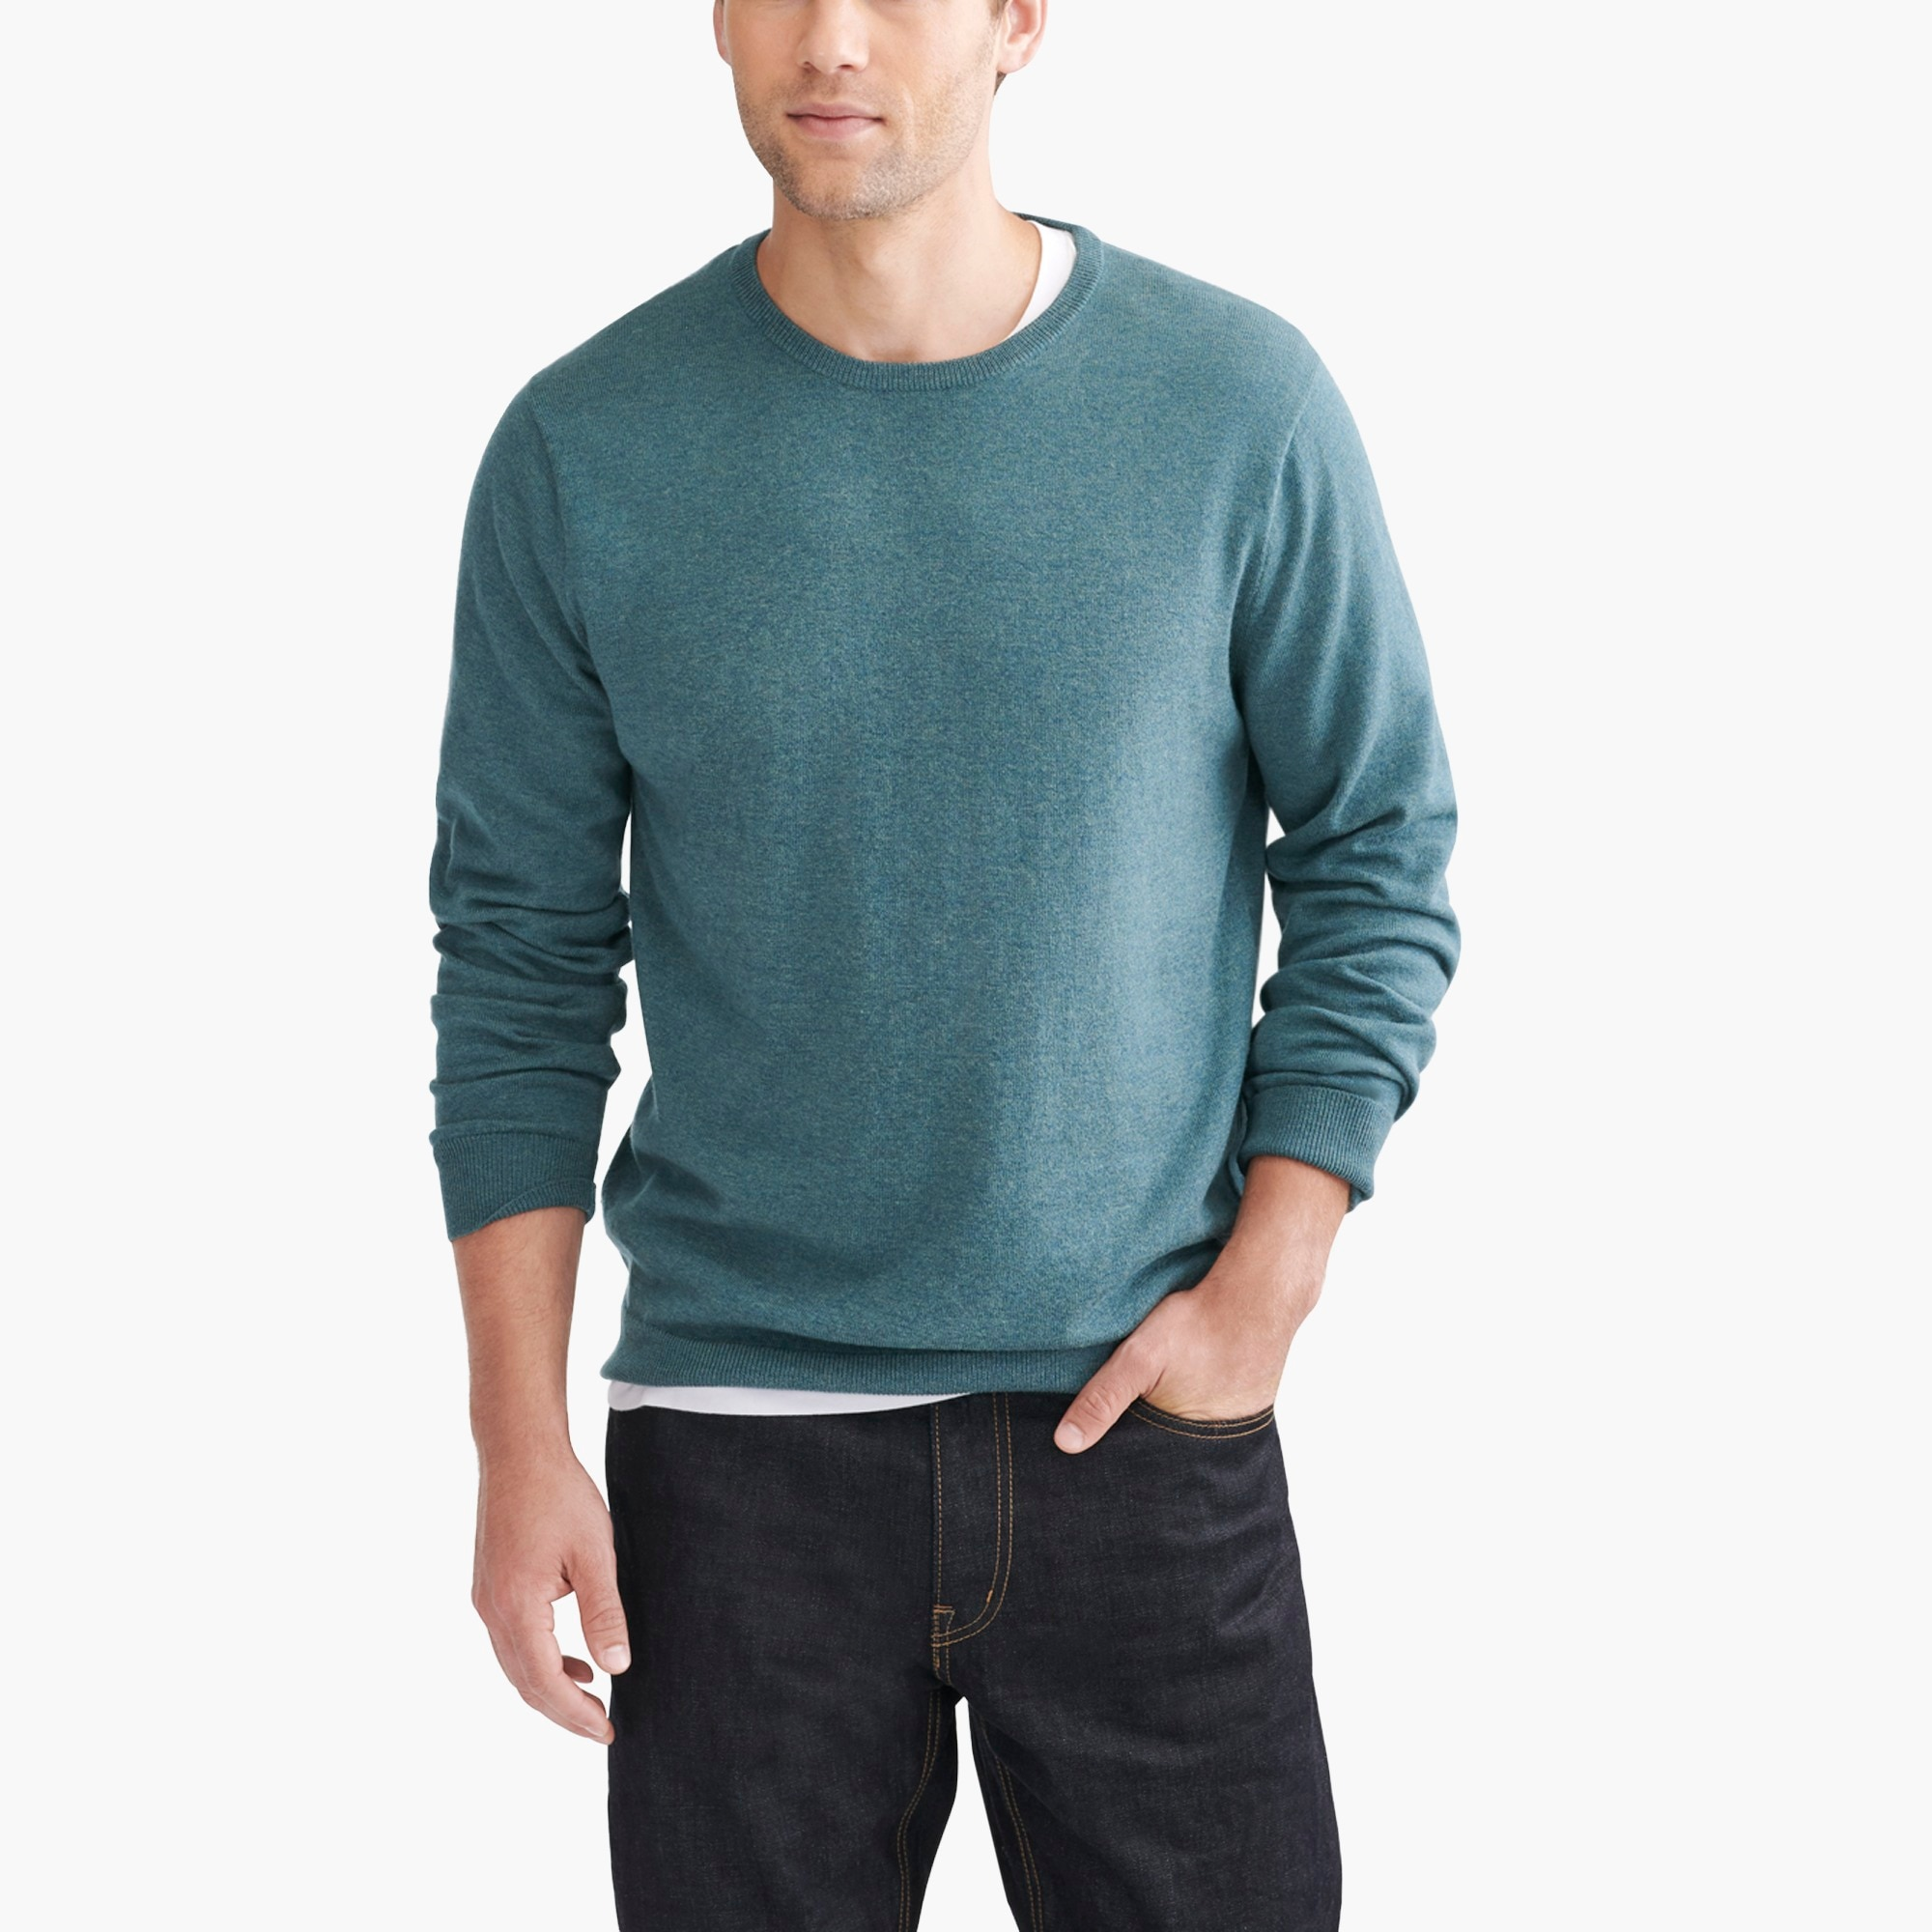 factory mens Slim-fit crewneck sweater in perfect merino blend